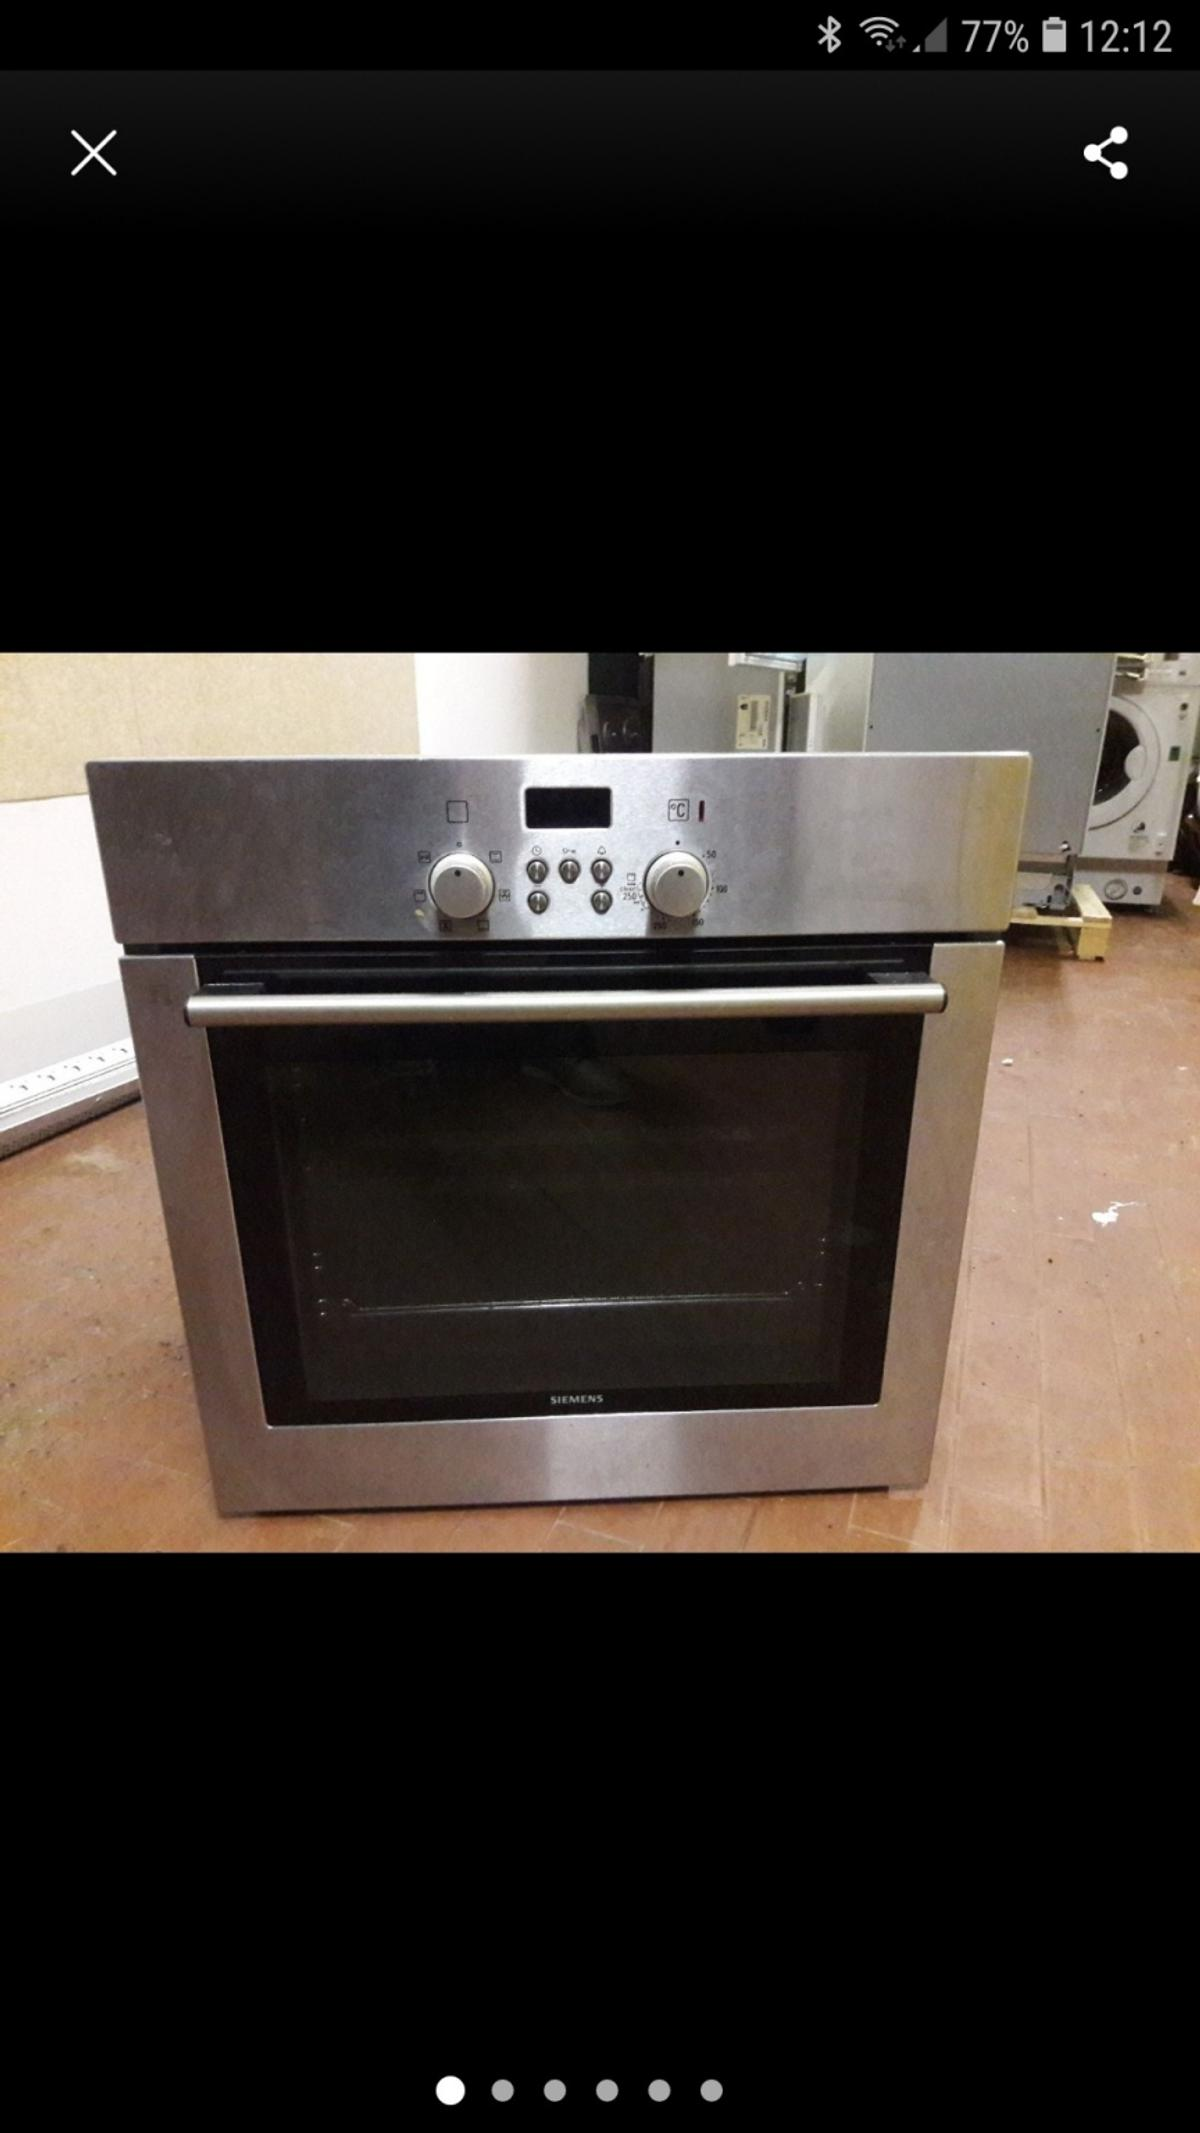 FORNO SIEMENS in 24040 Treviolo for €200.00 for sale - Shpock